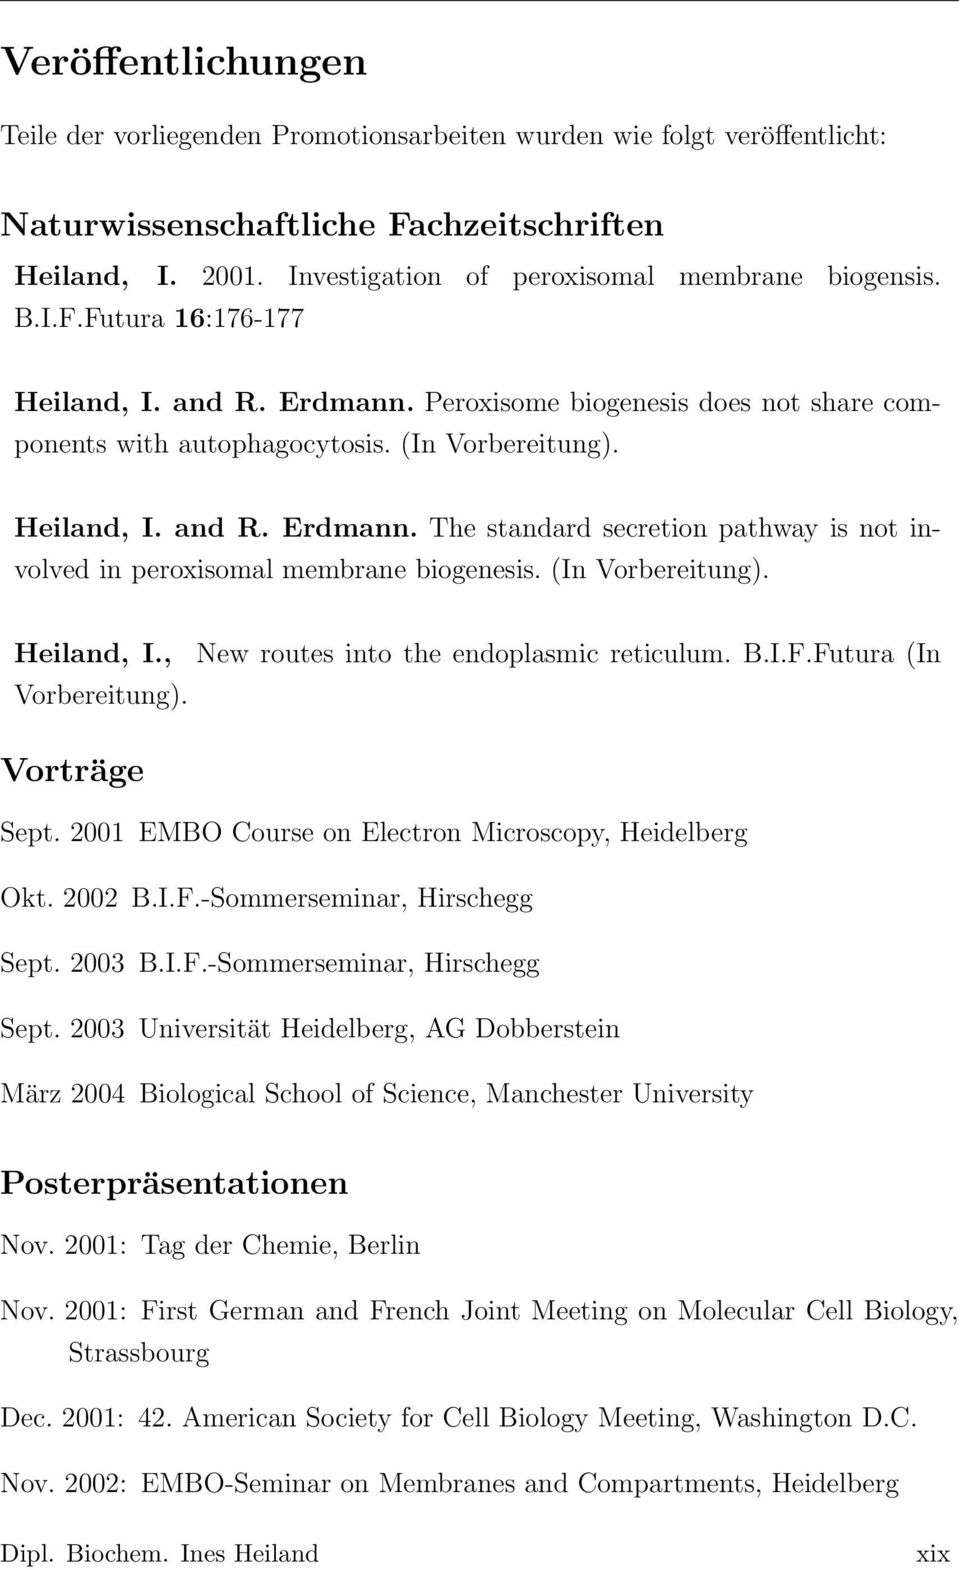 Heiland, I. and R. Erdmann. The standard secretion pathway is not involved in peroxisomal membrane biogenesis. (In Vorbereitung). Heiland, I., New routes into the endoplasmic reticulum. B.I.F.